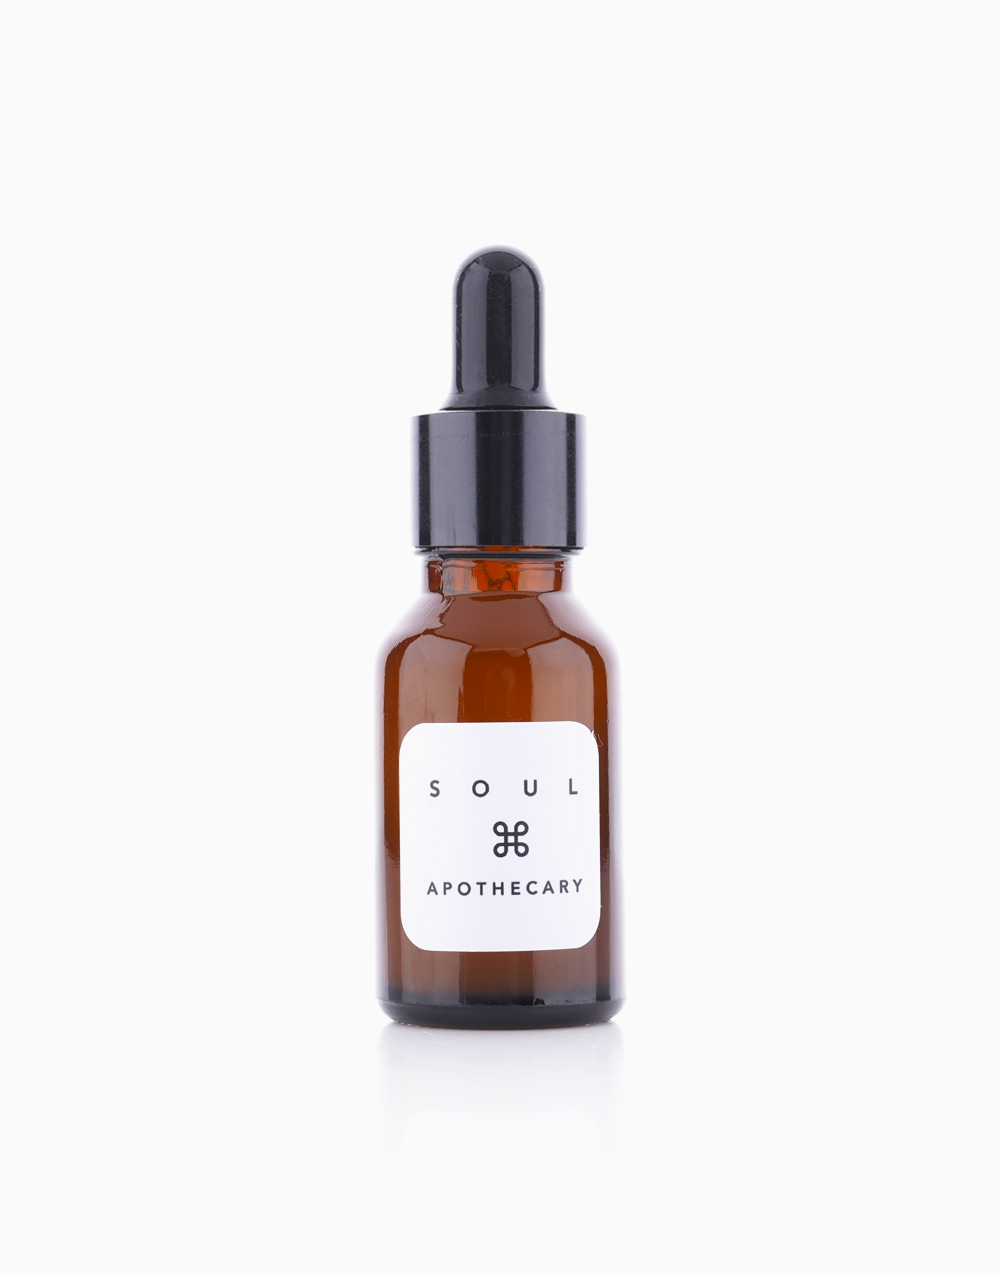 Advanced Repair Serum (Niacinamide, Squalane & More) 15ml by Soul Apothecary